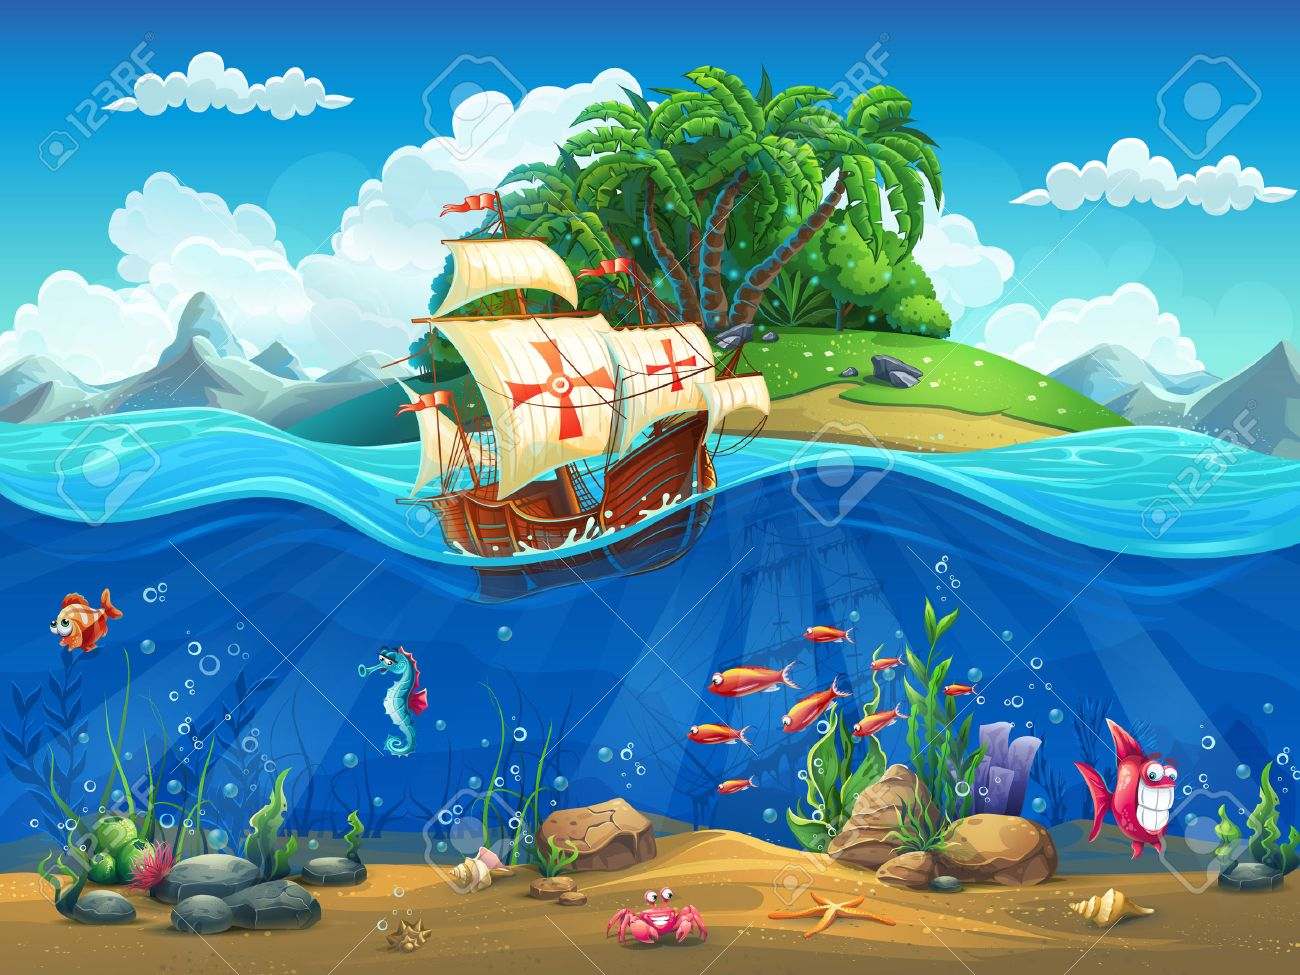 Cartoon underwater world with fish, plants, island and caravel - 45918748